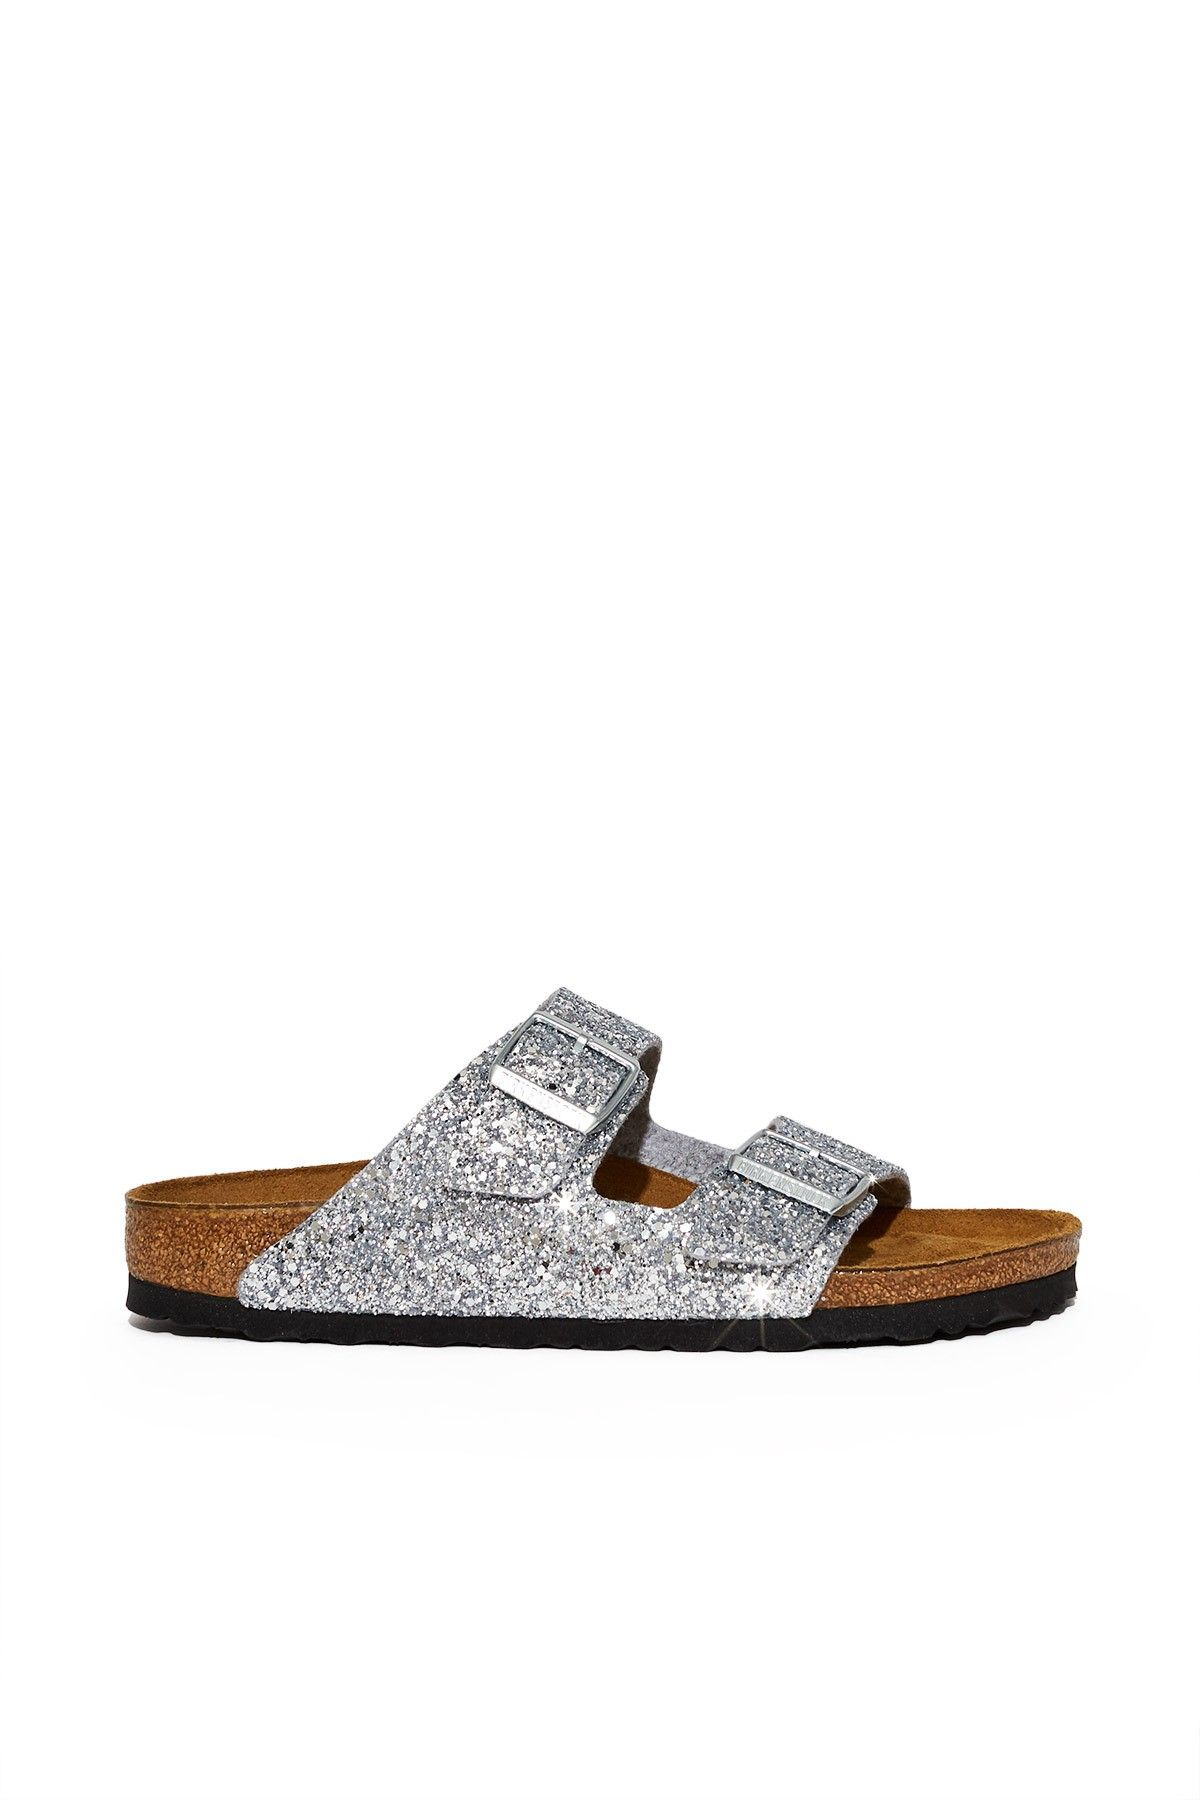 91a704223a73 Birkenstock x Opening Ceremony